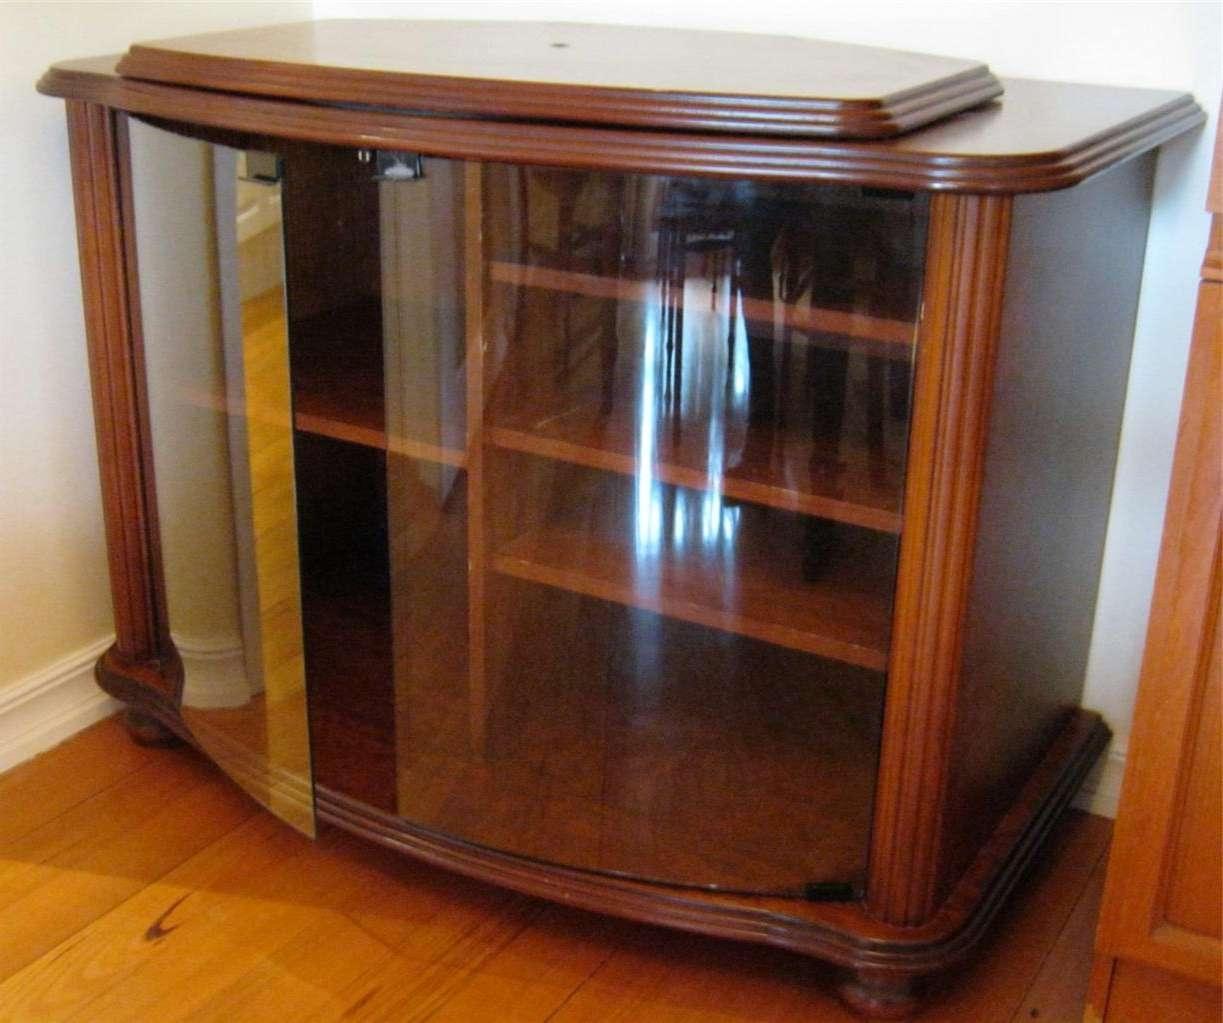 Corner Tv Stand Cabinet With Frameless Glass Doors – Decofurnish With Tv Cabinets With Glass Doors (View 6 of 20)